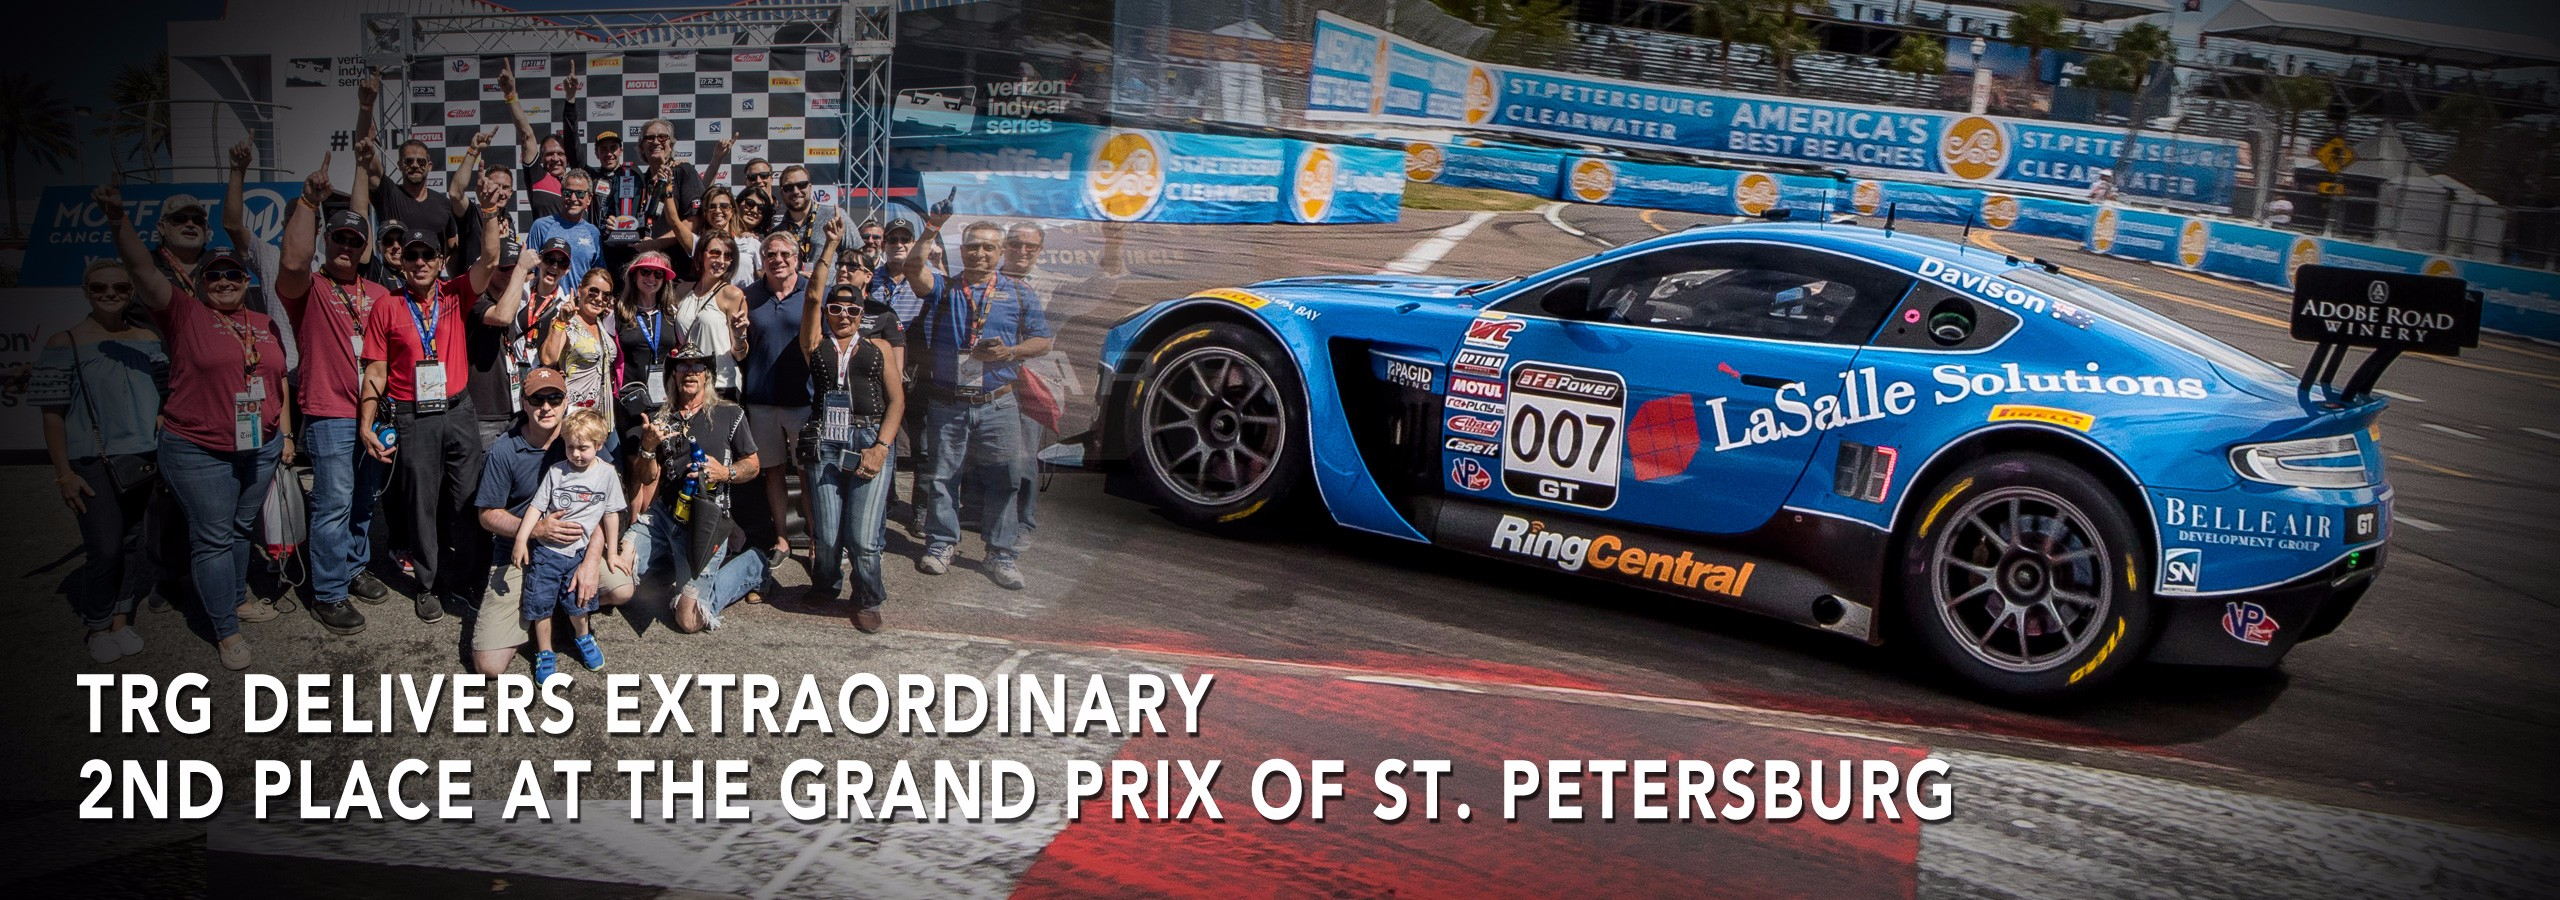 TRG delivers extraordinary 2nd place at the Grand Prix of St. Petersburg